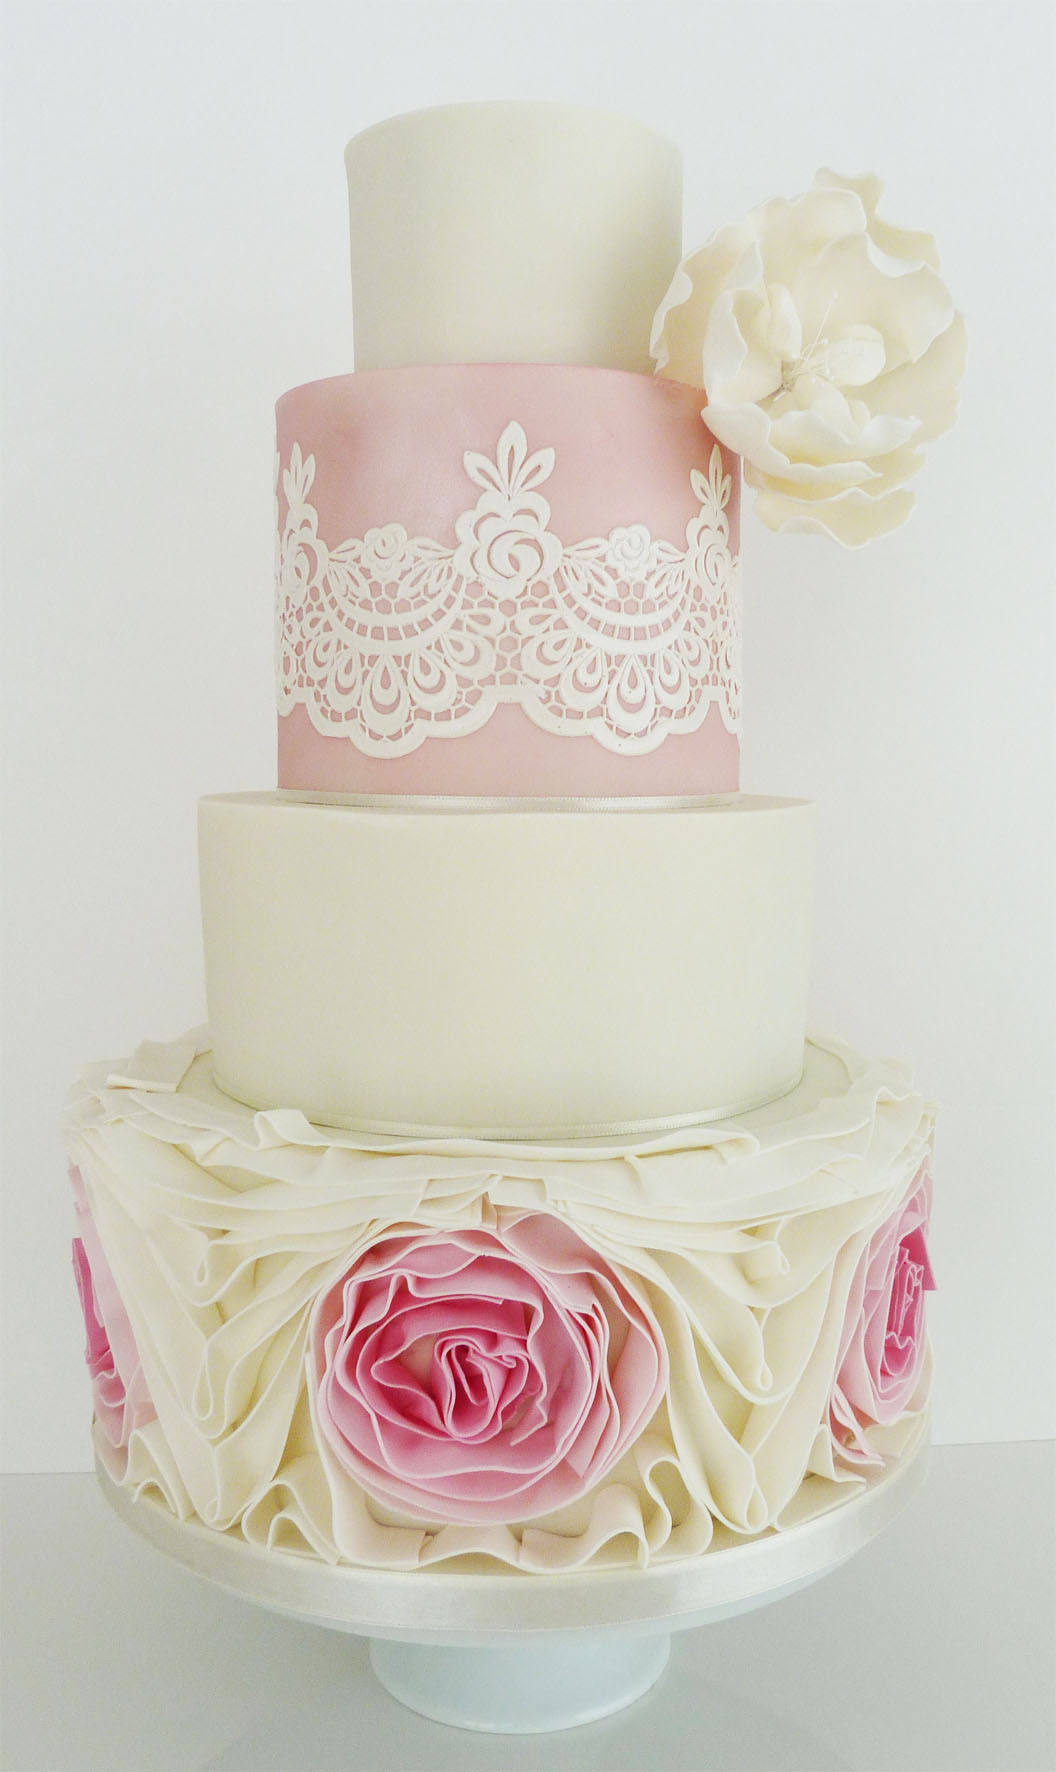 Cake decorating classes scotland bespoke cakes for all